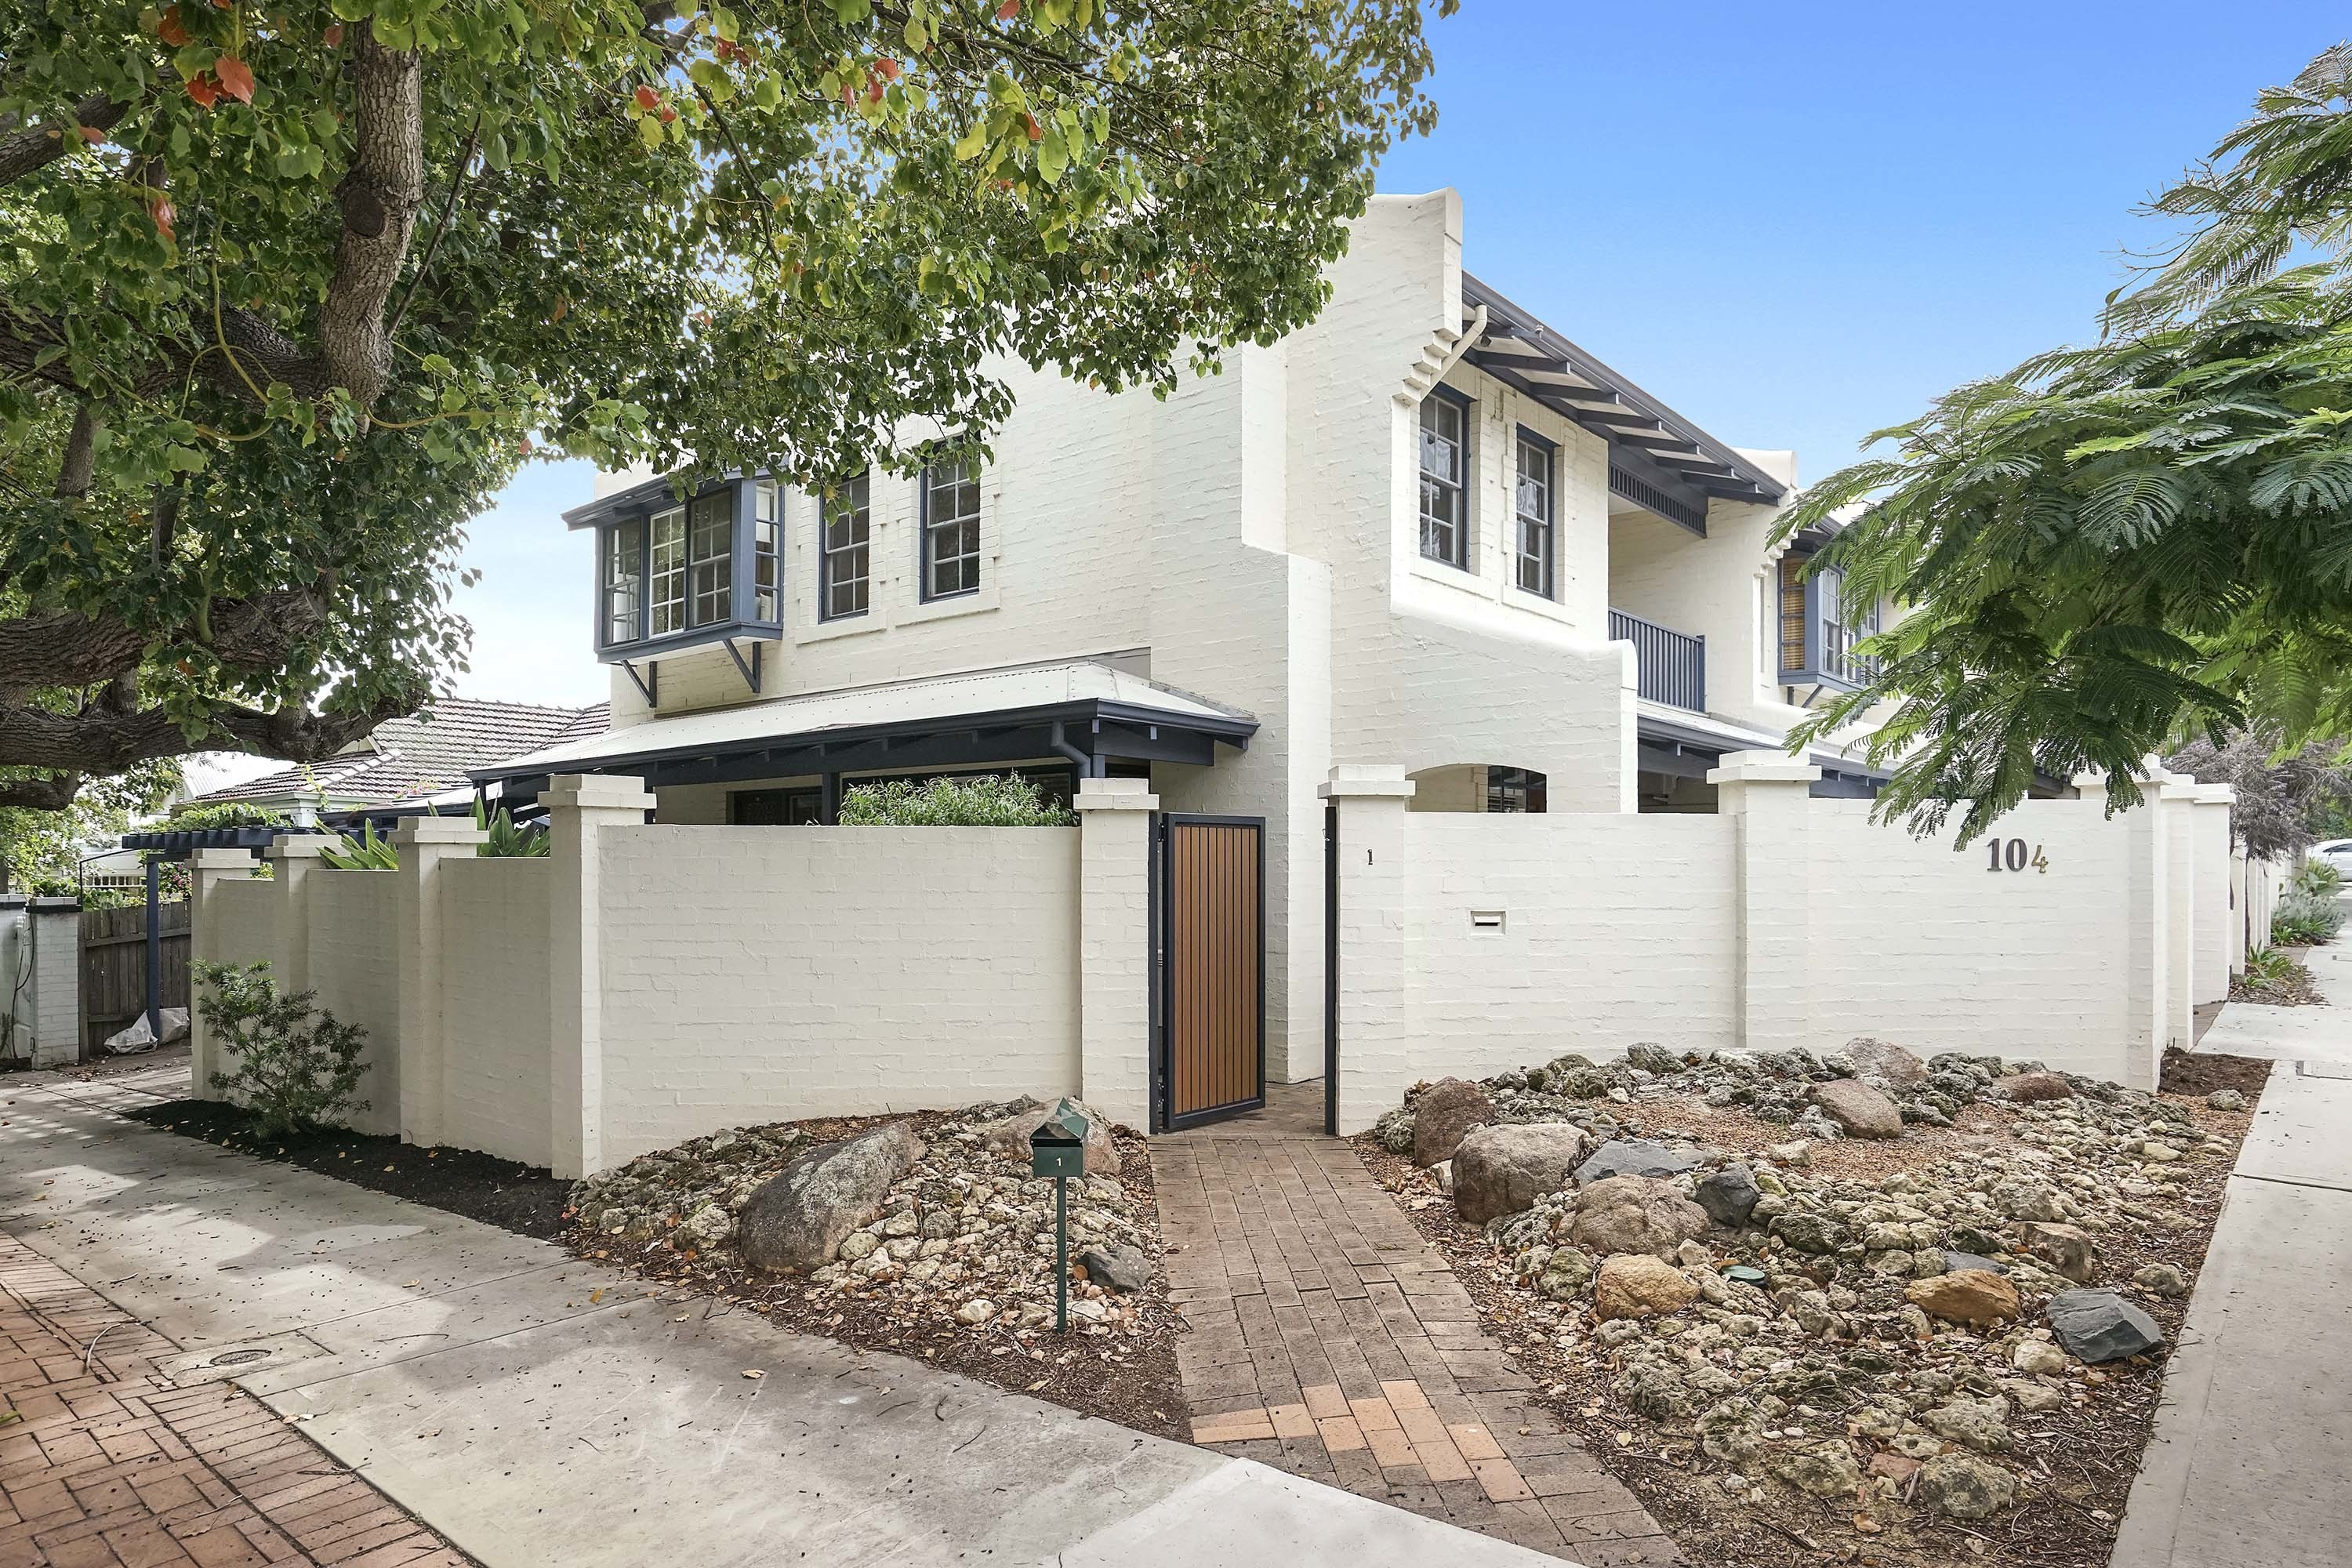 1/104 Hamersley Road Subiaco 6008